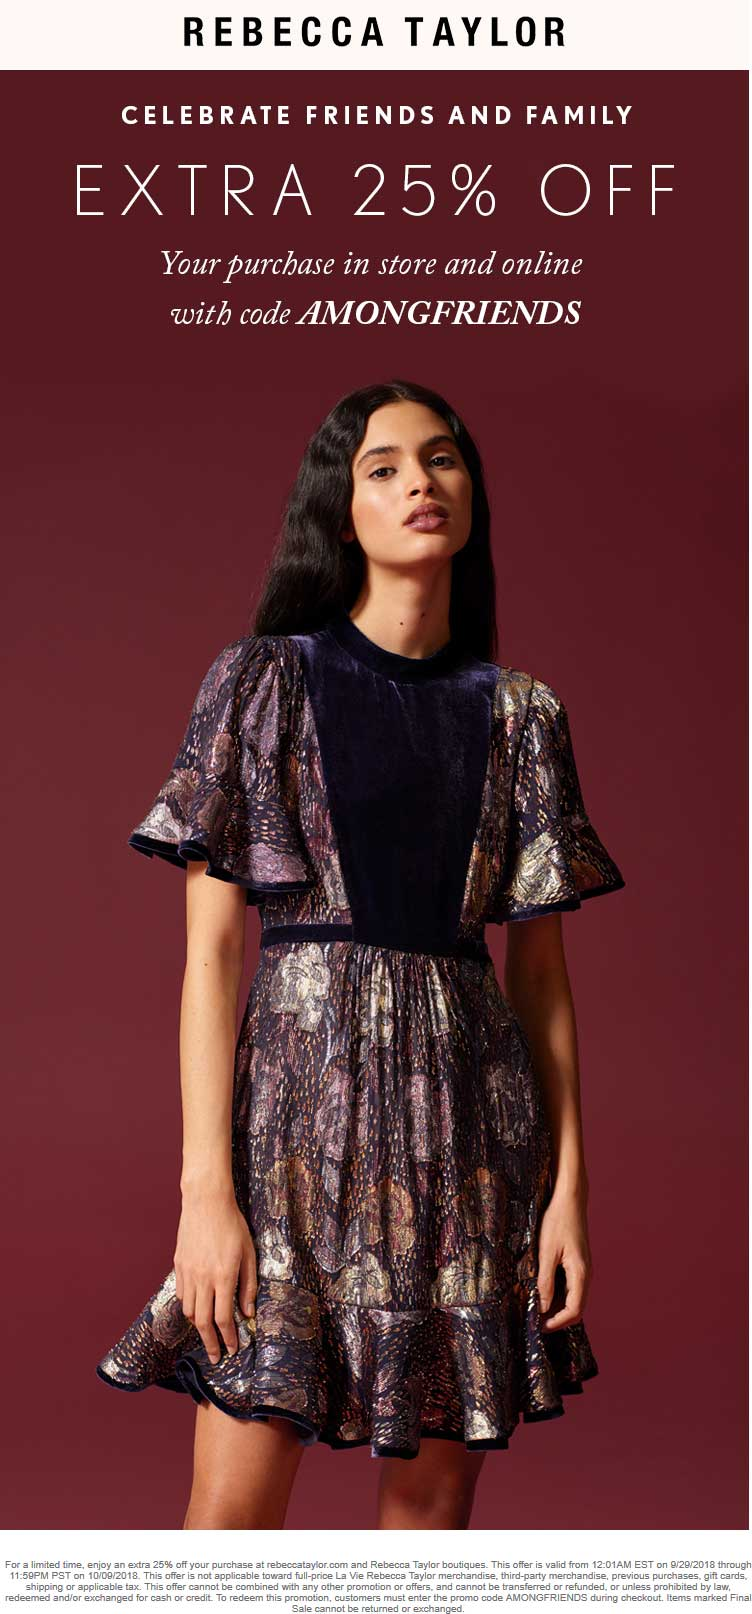 Rebecca Taylor Coupon June 2019 25% off at Rebecca Taylor, or online via promo code AMONGFRIENDS